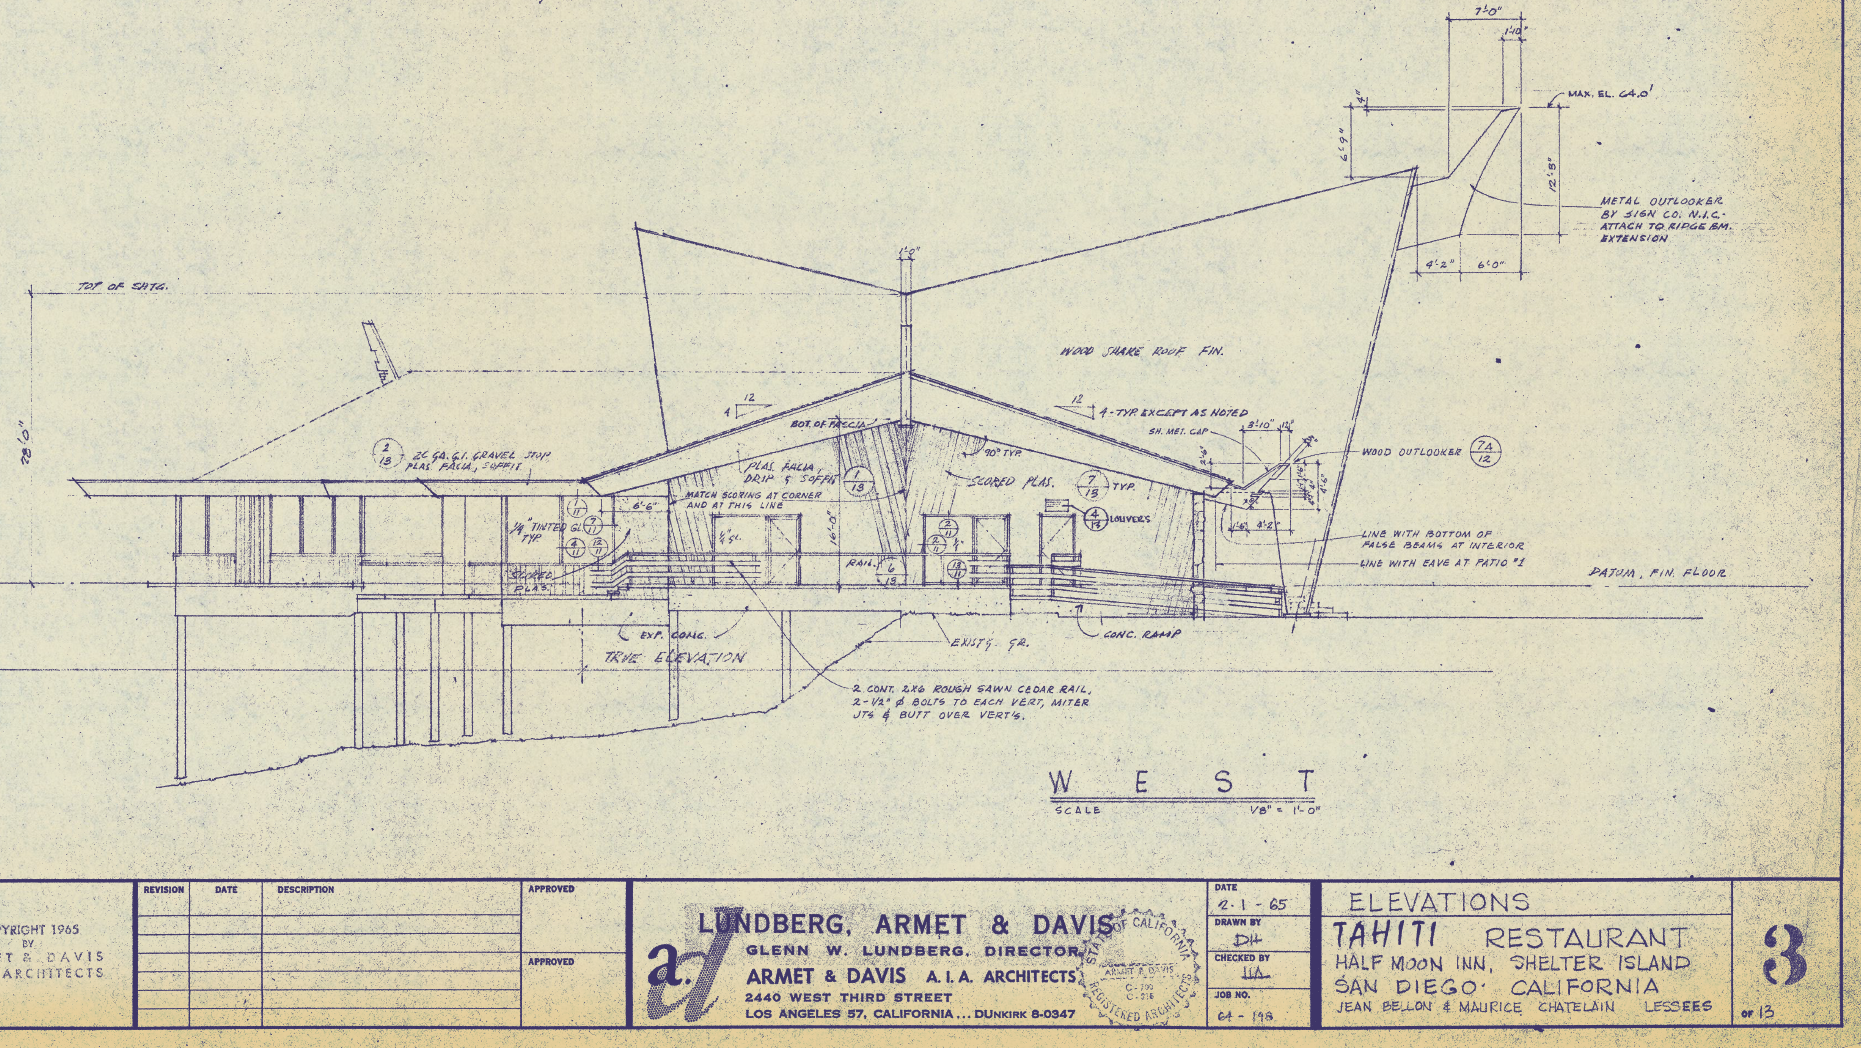 Tahiti Restaurant blueprints, 1965